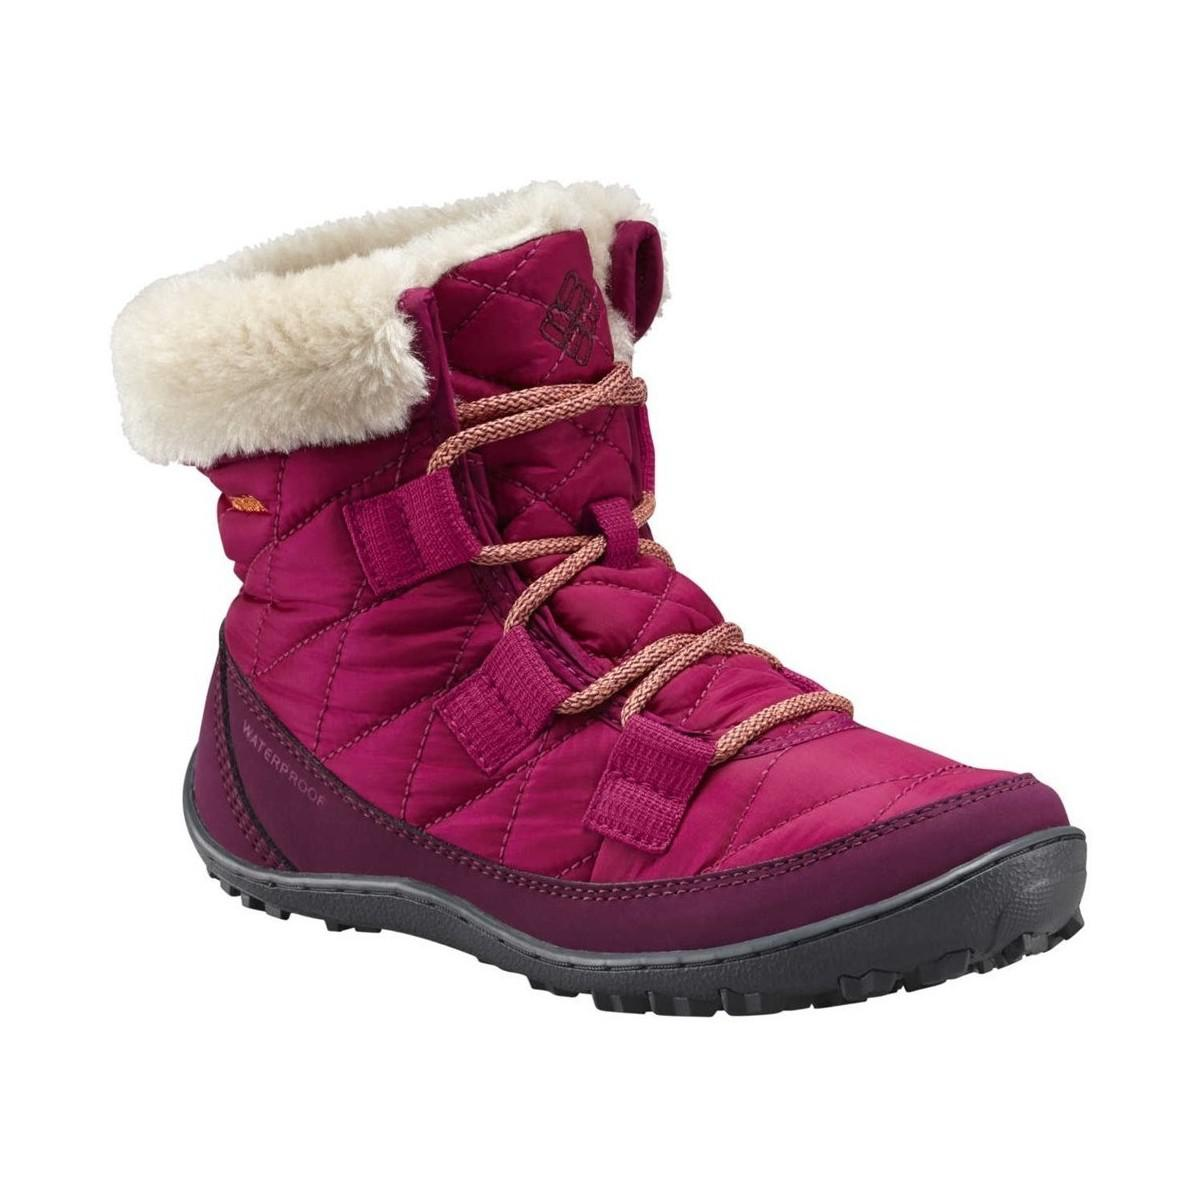 c0c4a907dcd955 Columbia Youth Minx Shorty Omniheat Women's Snow Boots In Pink in ...